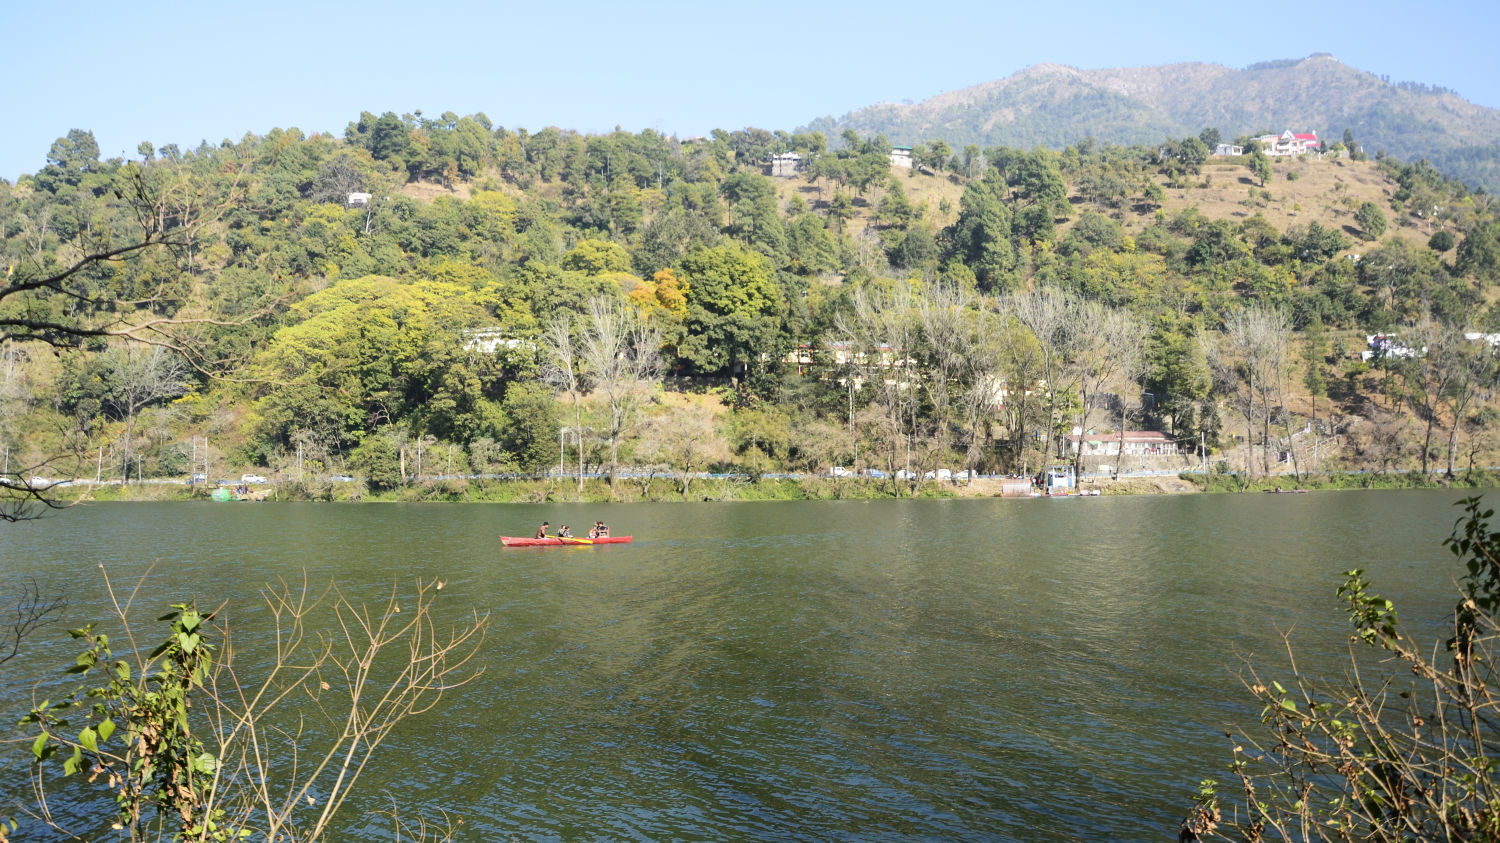 Bhimtal Lake at Nainital, Things to see in Nainital, Places to see in Uttarakhand